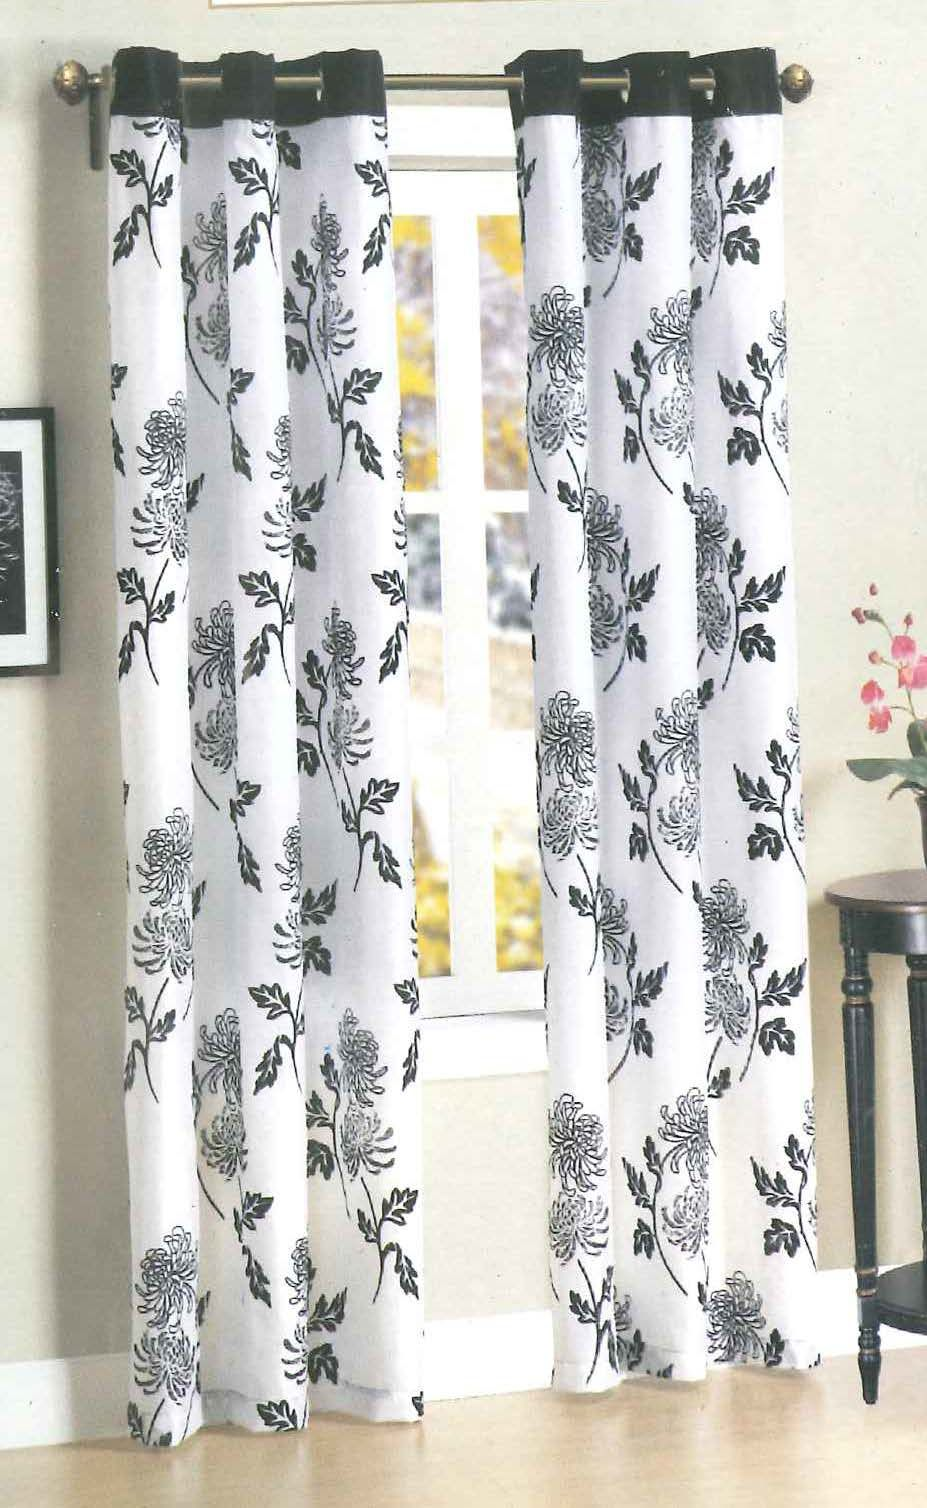 Pretty Curtains Found At Family Dollar For 1050 Panel